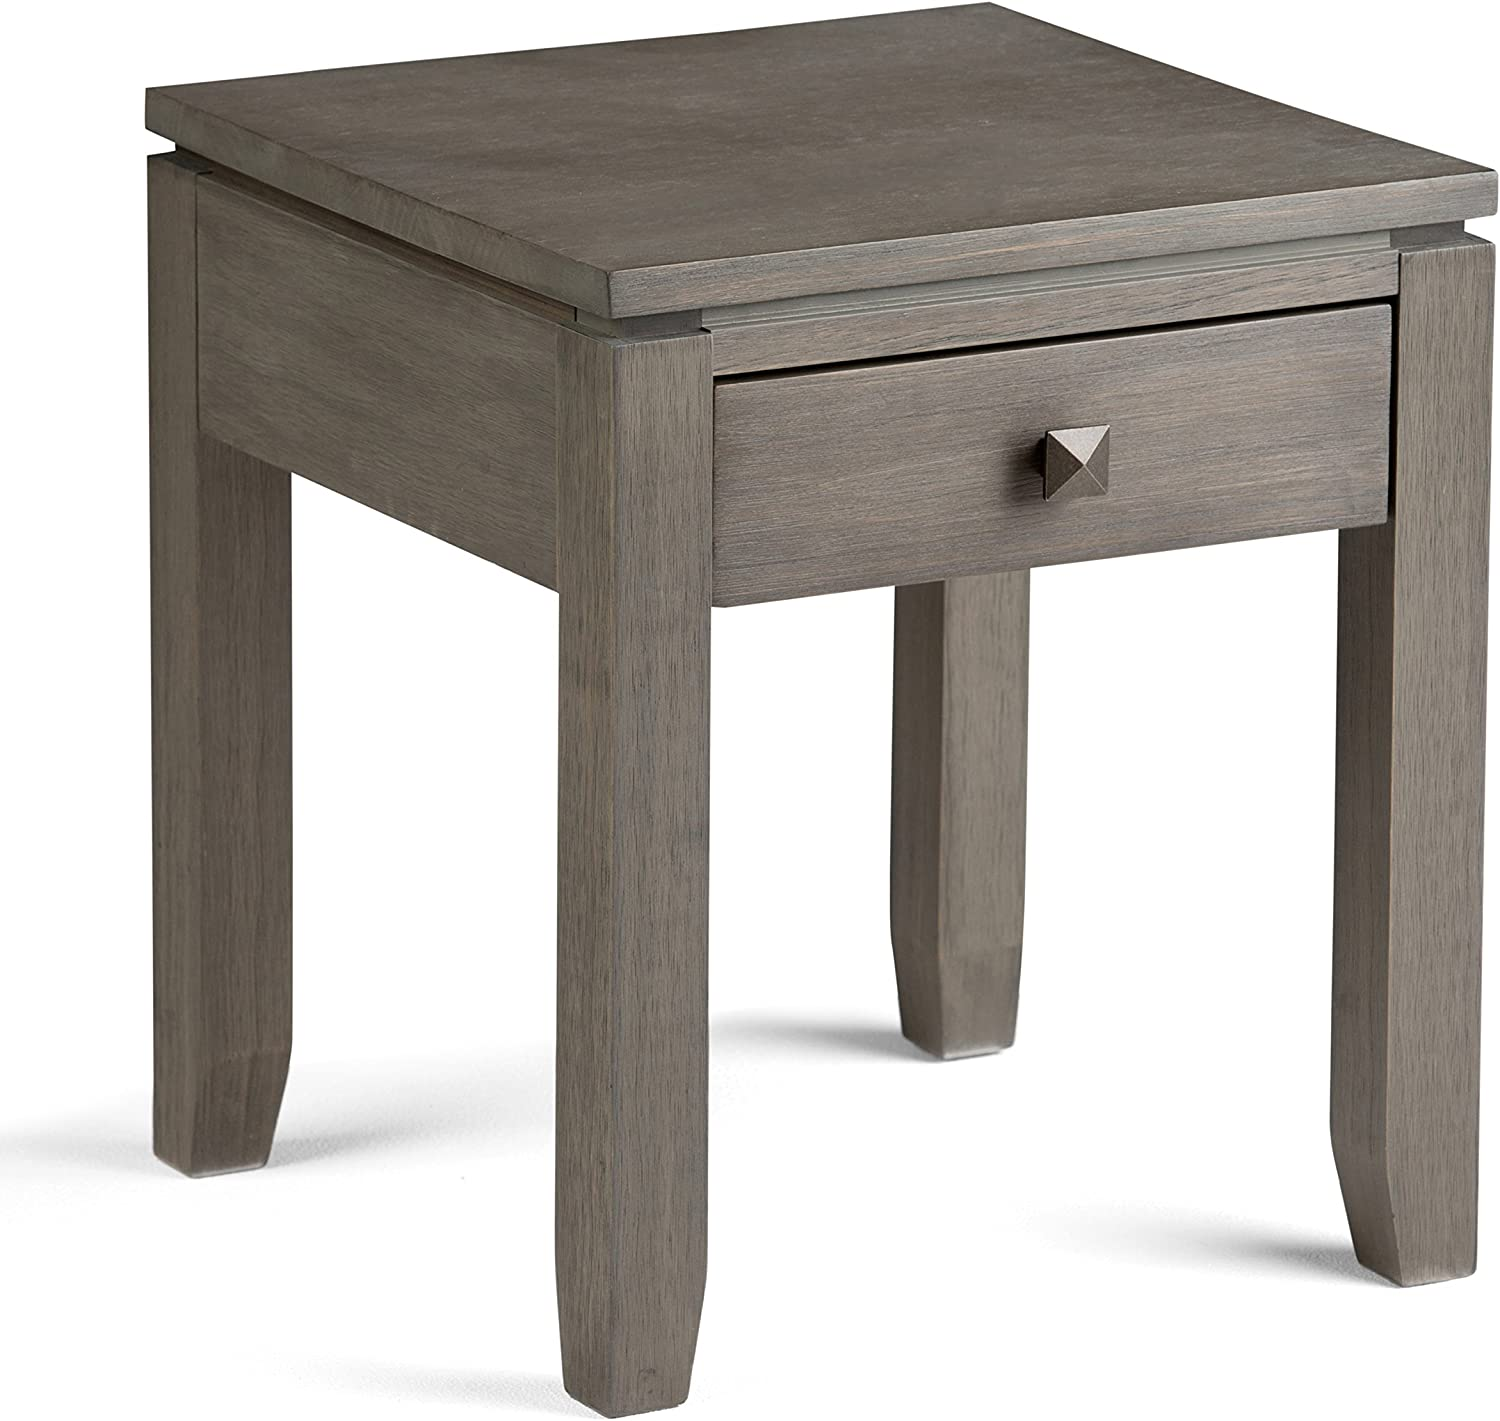 Simpli Home INT-AXCCOS-END-FG Cosmopolitan Solid Wood 18 inch wide Square Contemporary End Side Table in Farmhouse Grey